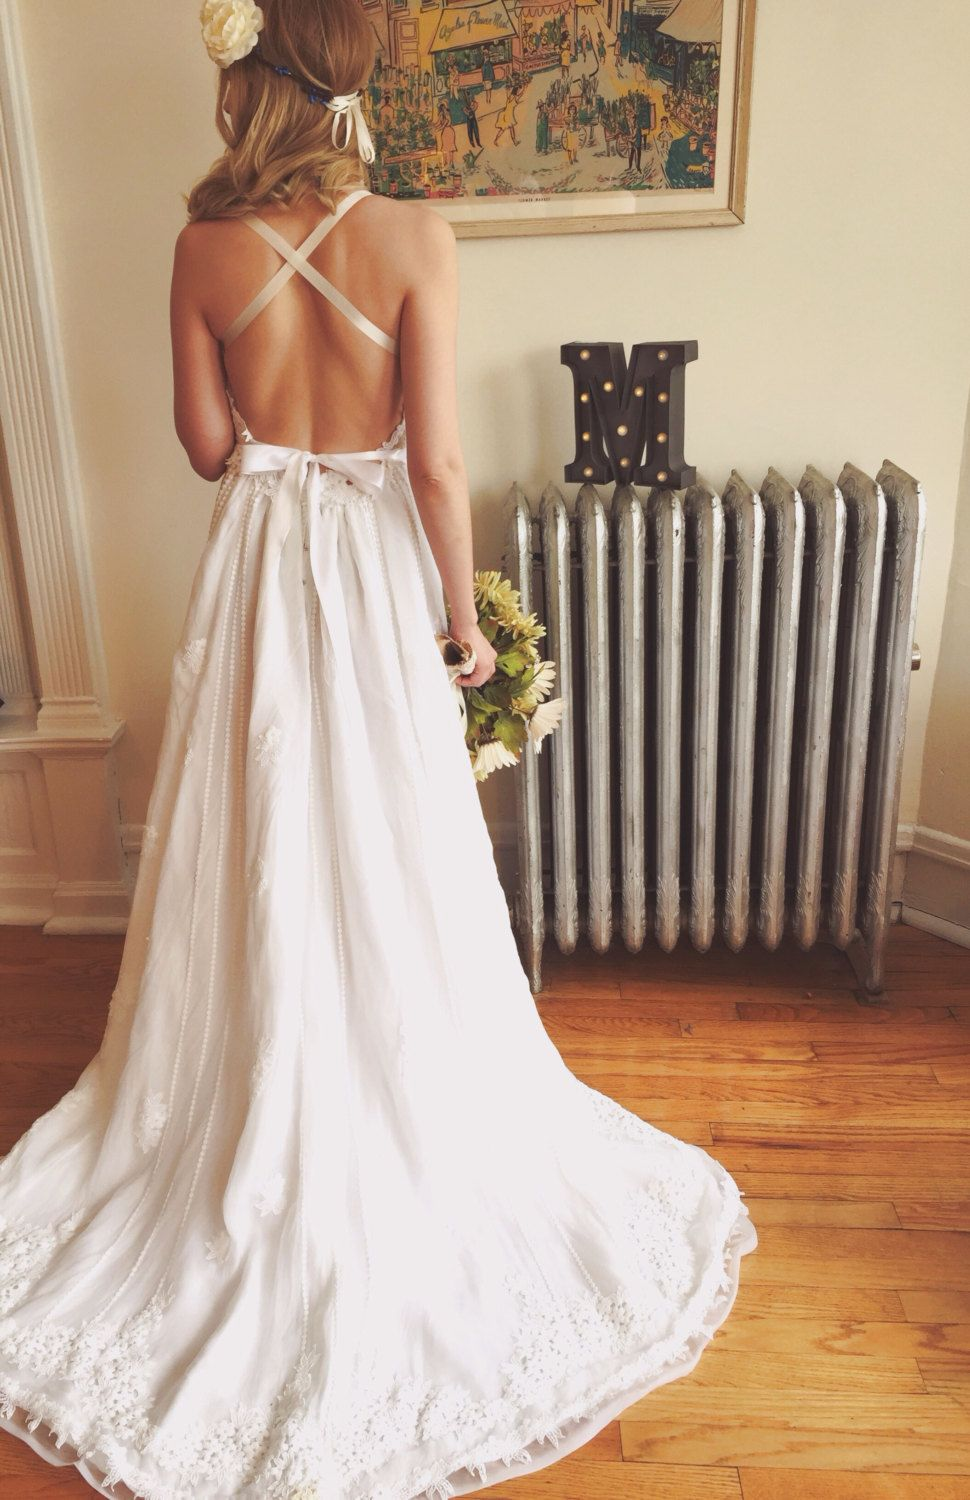 Casual hippie wedding dresses  Backless Bohemian Wedding Dress  Pinterest  Bohemian Wedding